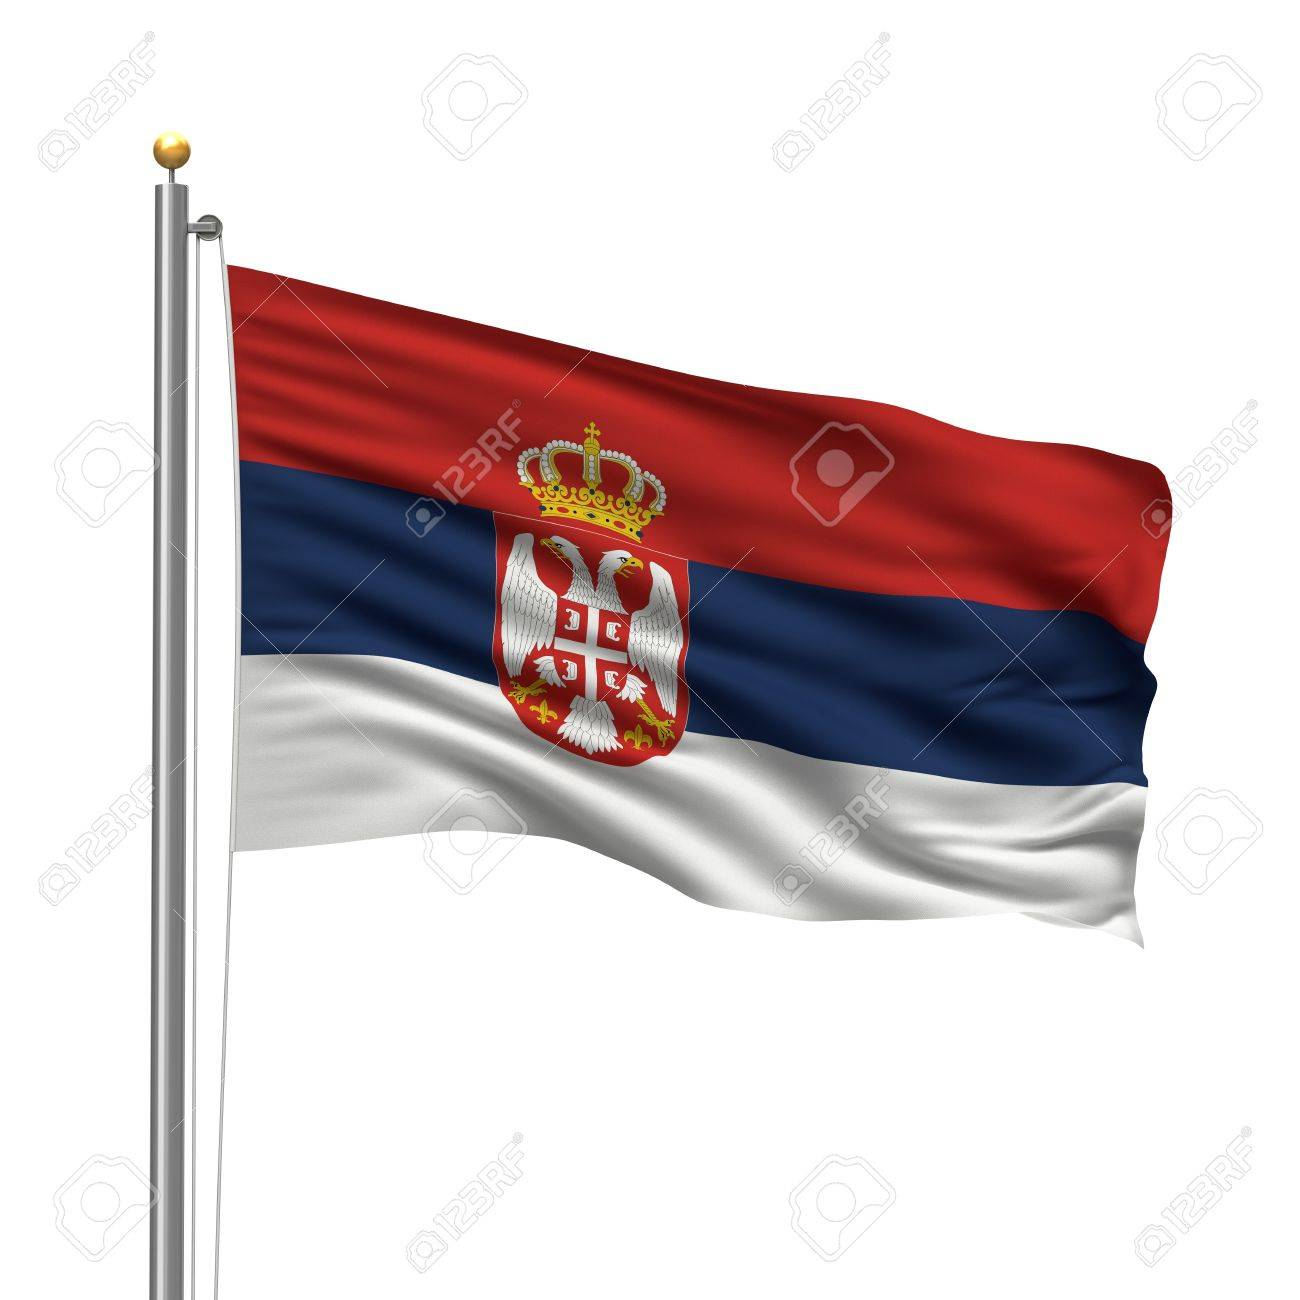 Flag of Serbia with flag pole waving in the wind over white background Stock Photo - 8186982